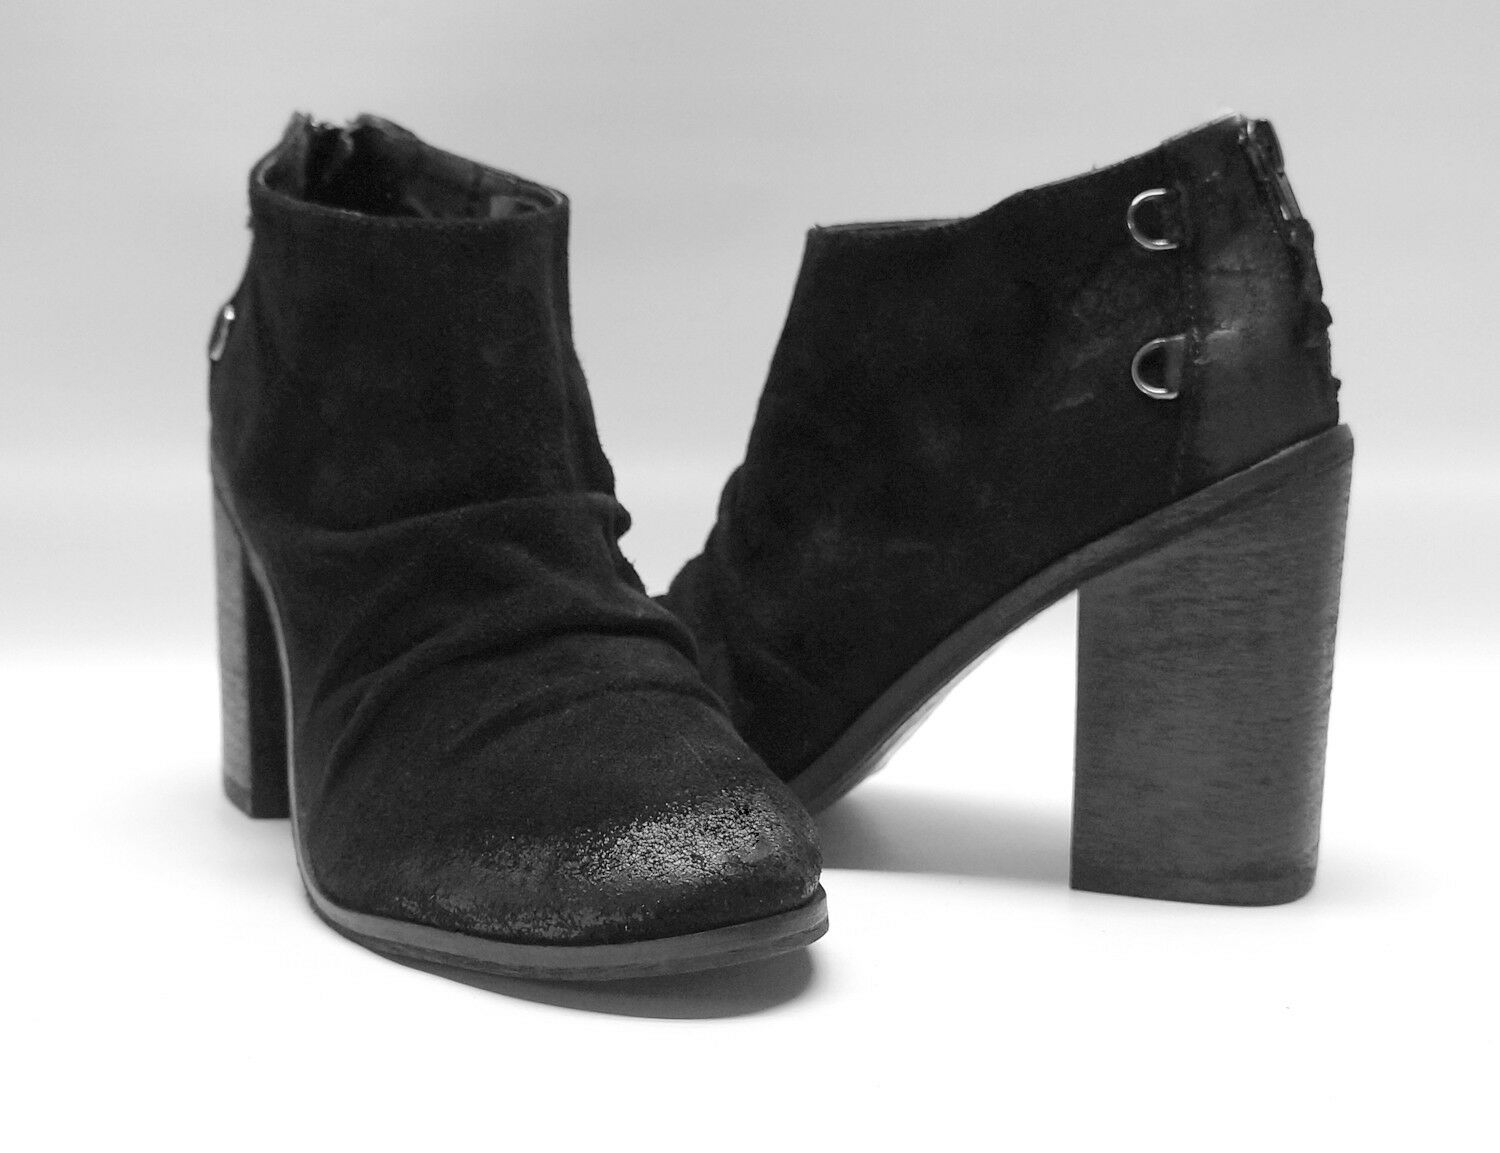 Boutique 9  160 Black Leather Ankle Ankle Ankle Boots Shale Women's shoes 7 768e85